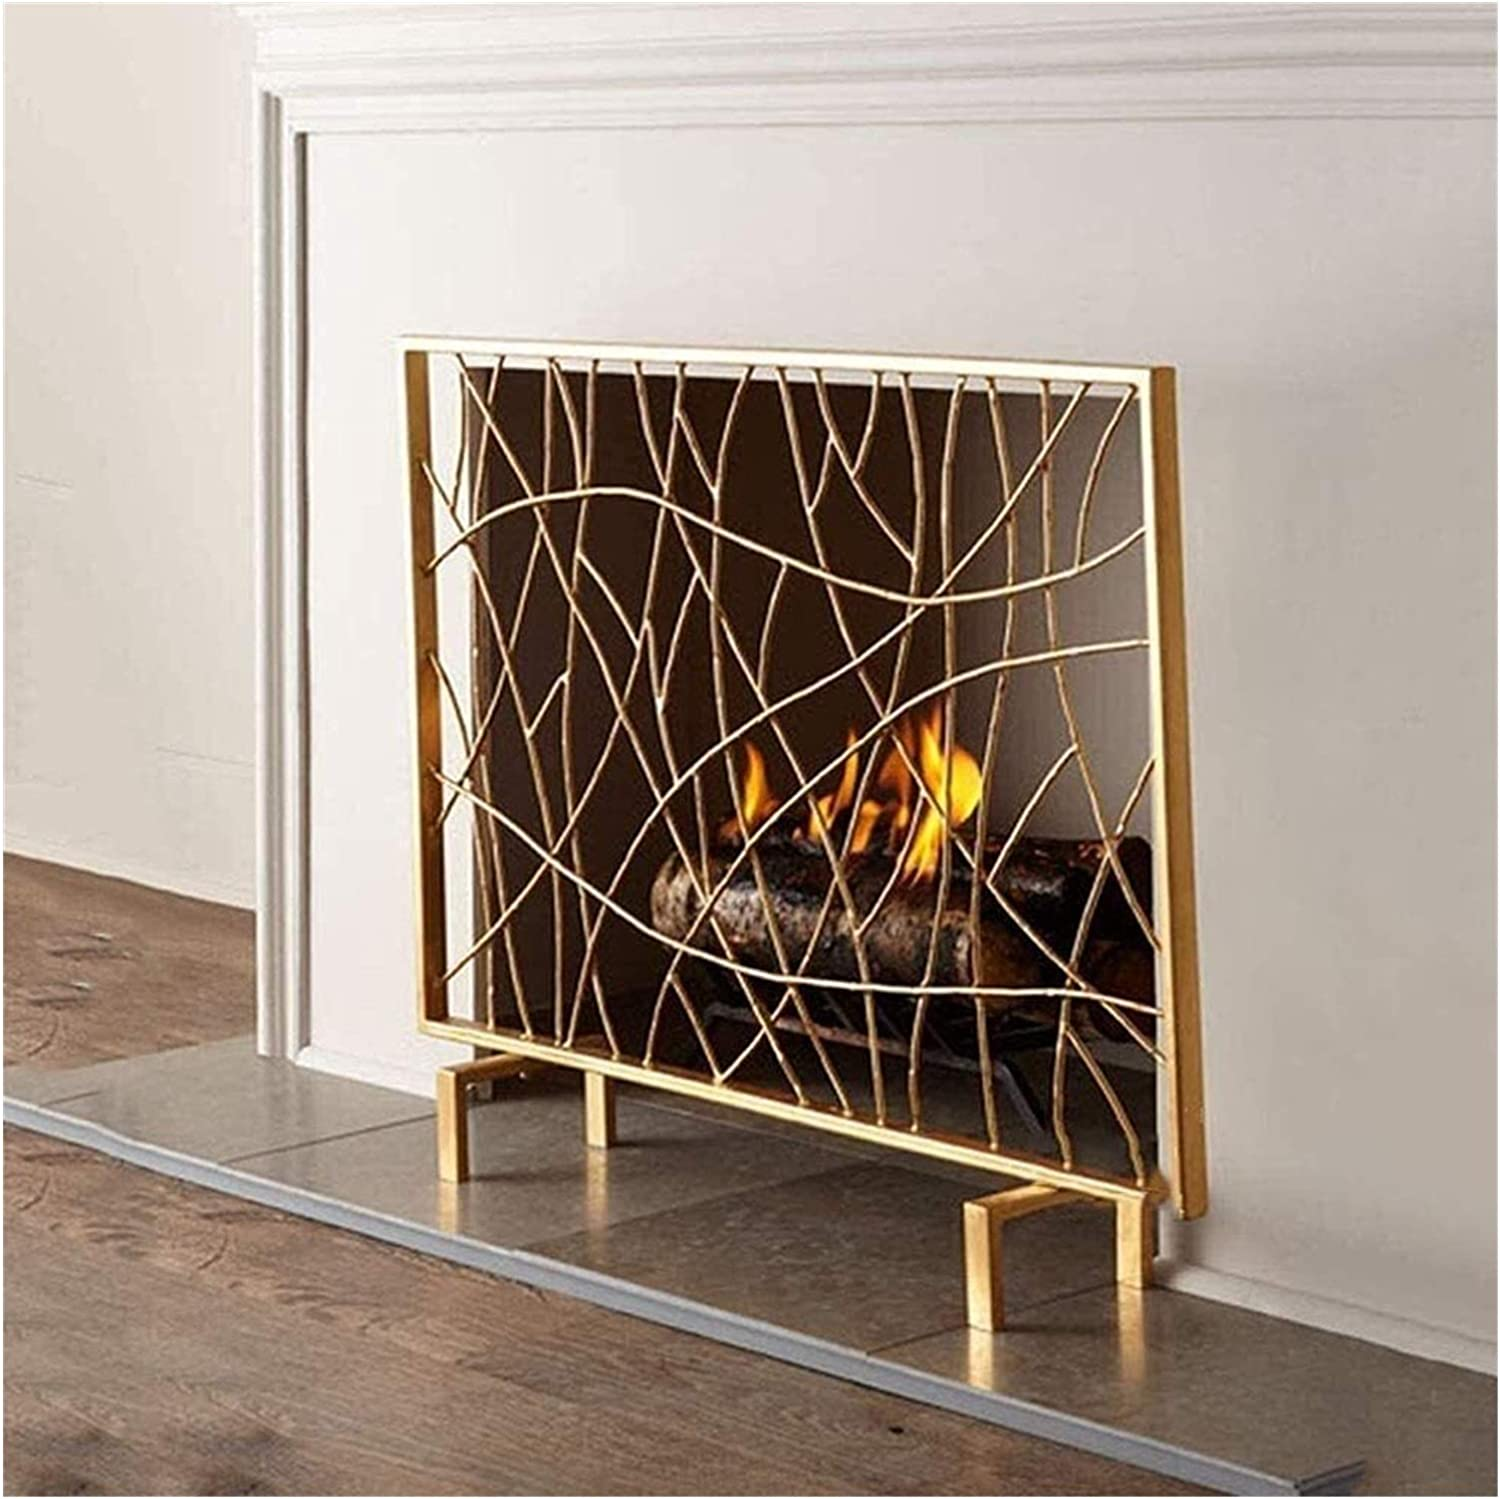 Kansas City Mall ZHANGXX Indoor Fireplace Indianapolis Mall Screen Safety Pr Baby